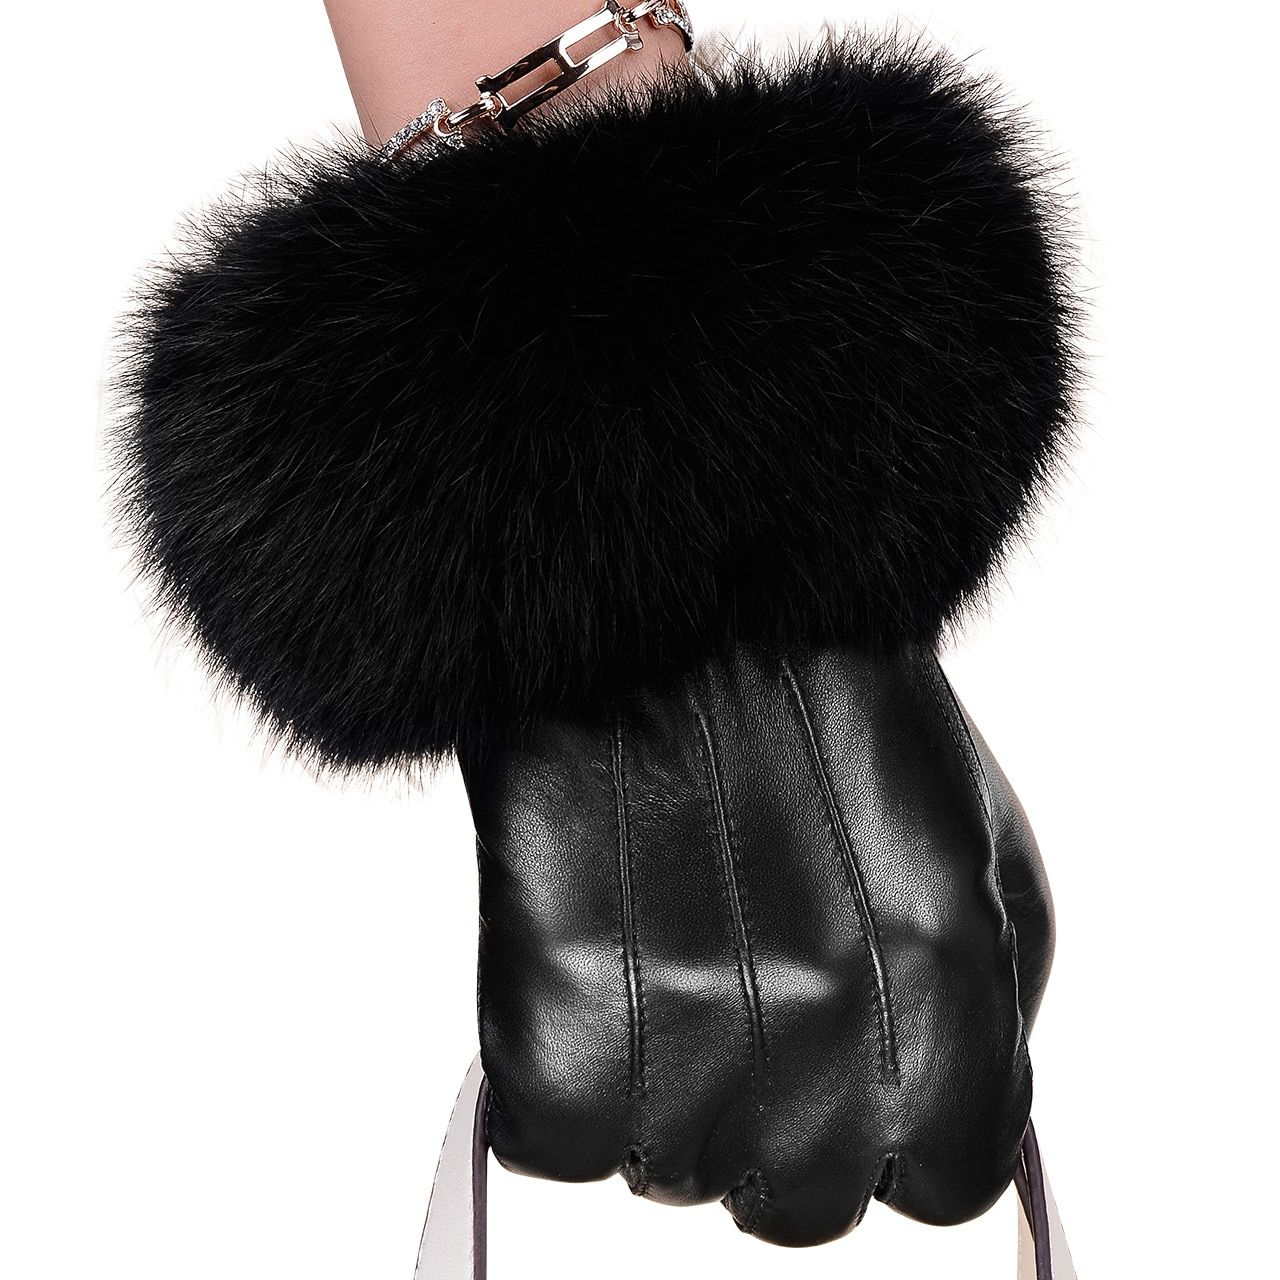 Winter Spring Fashion Winter Sheepskin Gloves Top Lambskin Solid Real Genuine Leather Women Wrist Driving Glove